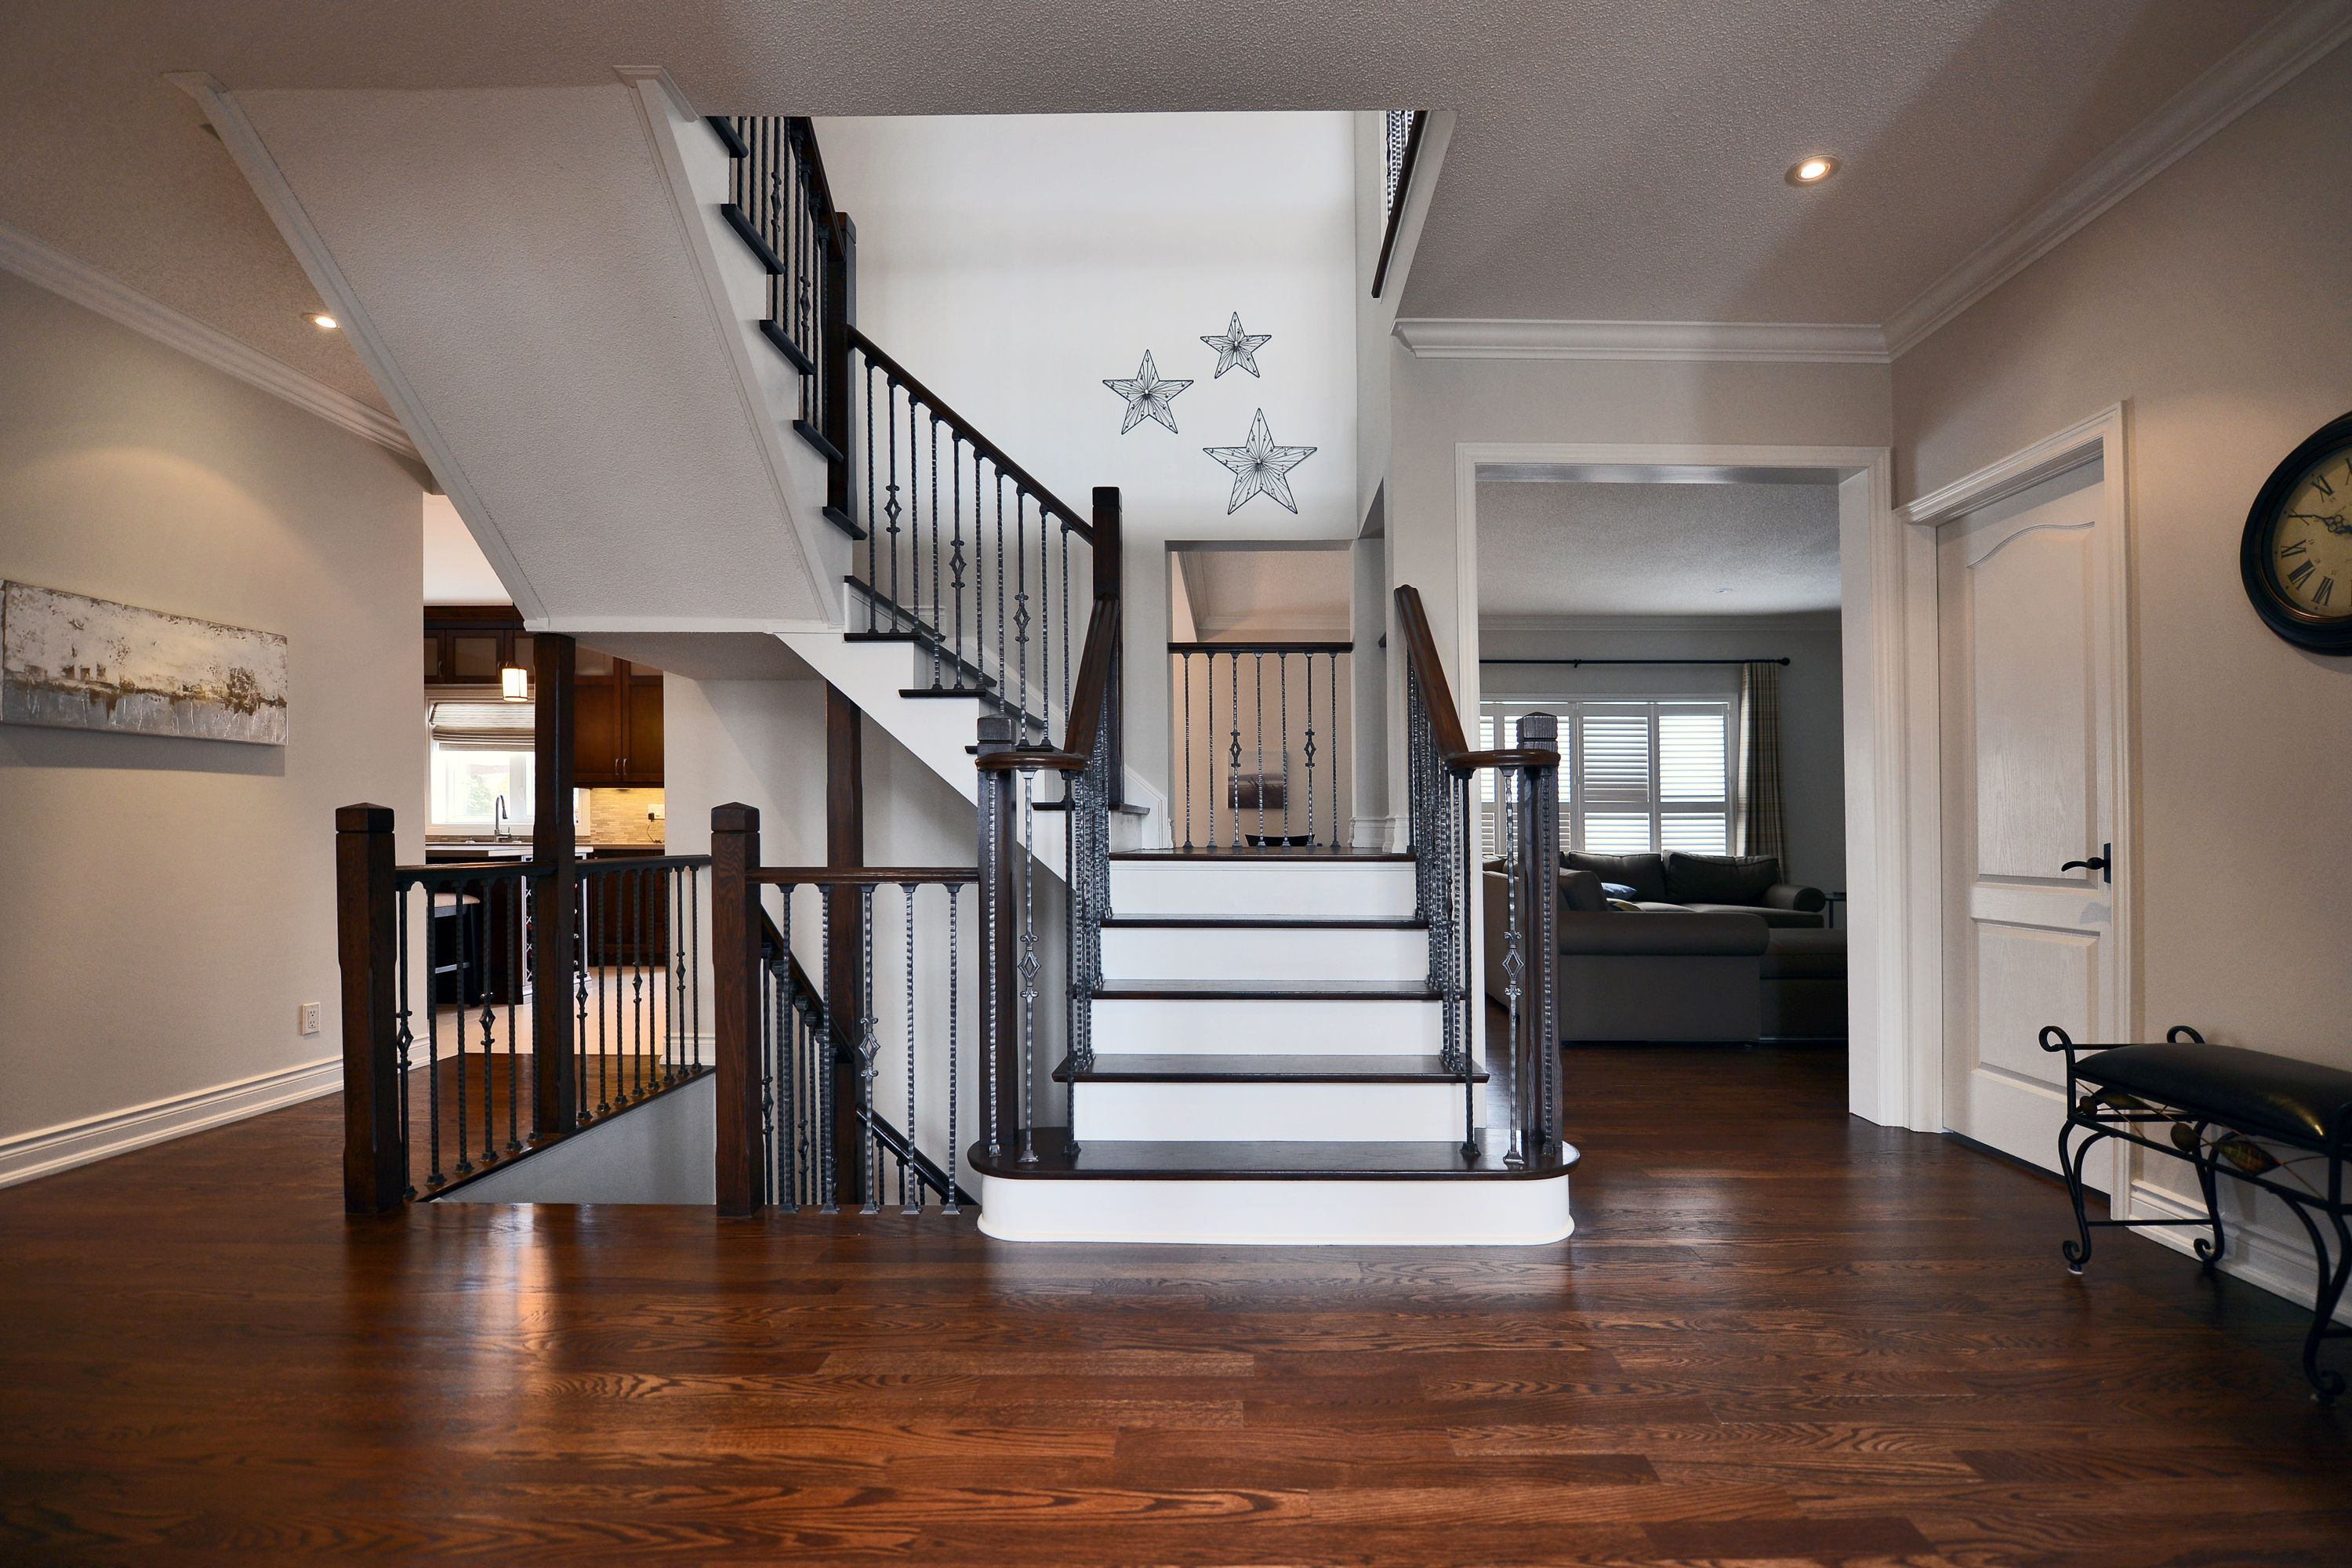 cheap hardwood flooring gta of pin by design spec building group ltd on stairs and railings home with regard to gta railings restoration toronto stairs refurbishment stairways ladder staircases